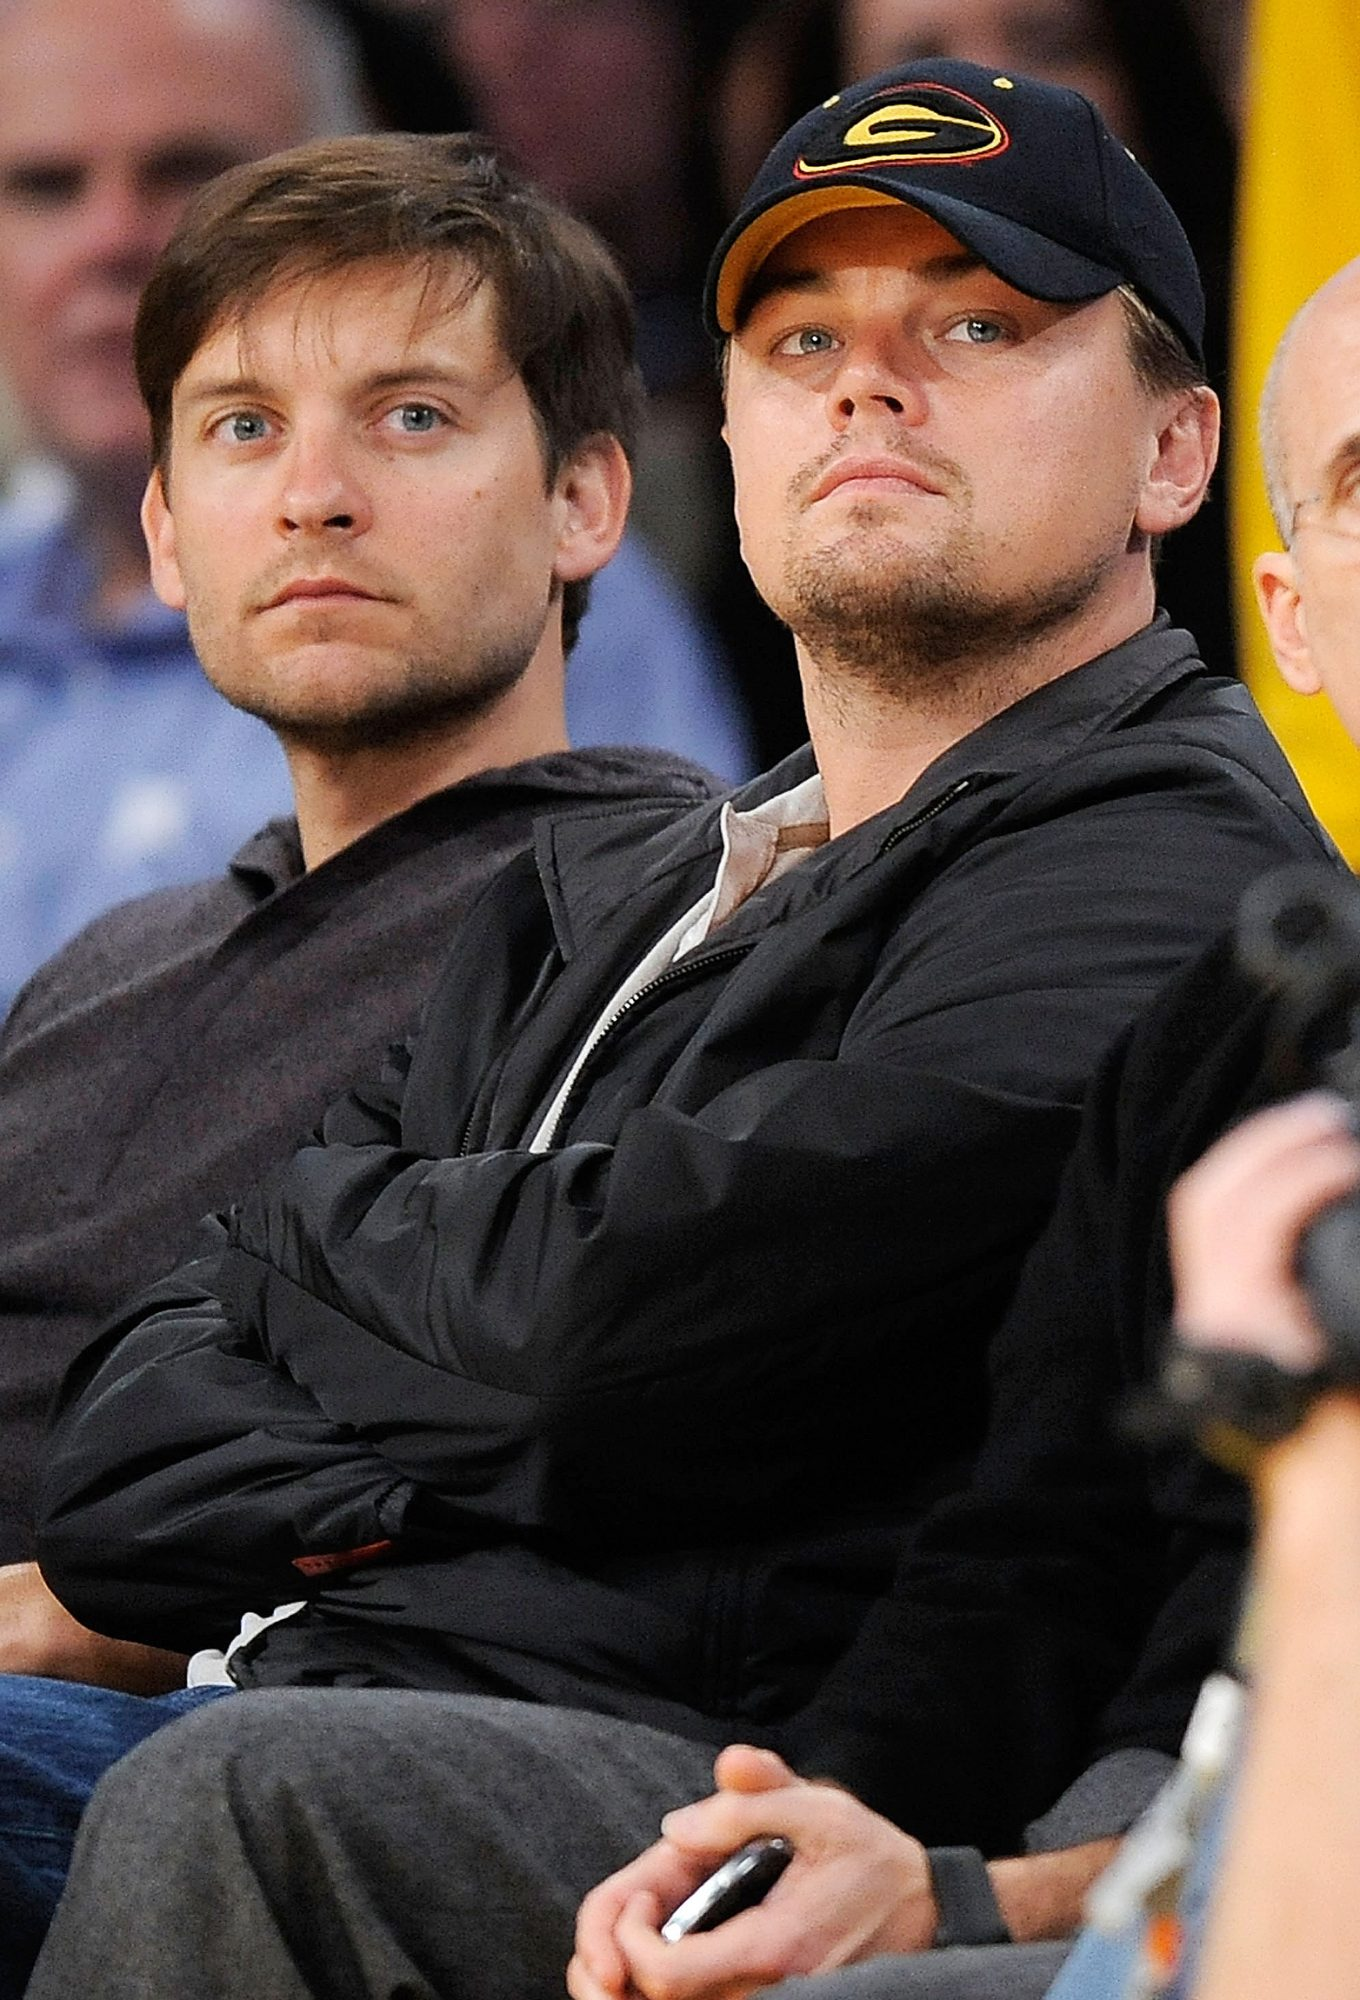 And best buds with Tobey Maguire since the '80s.